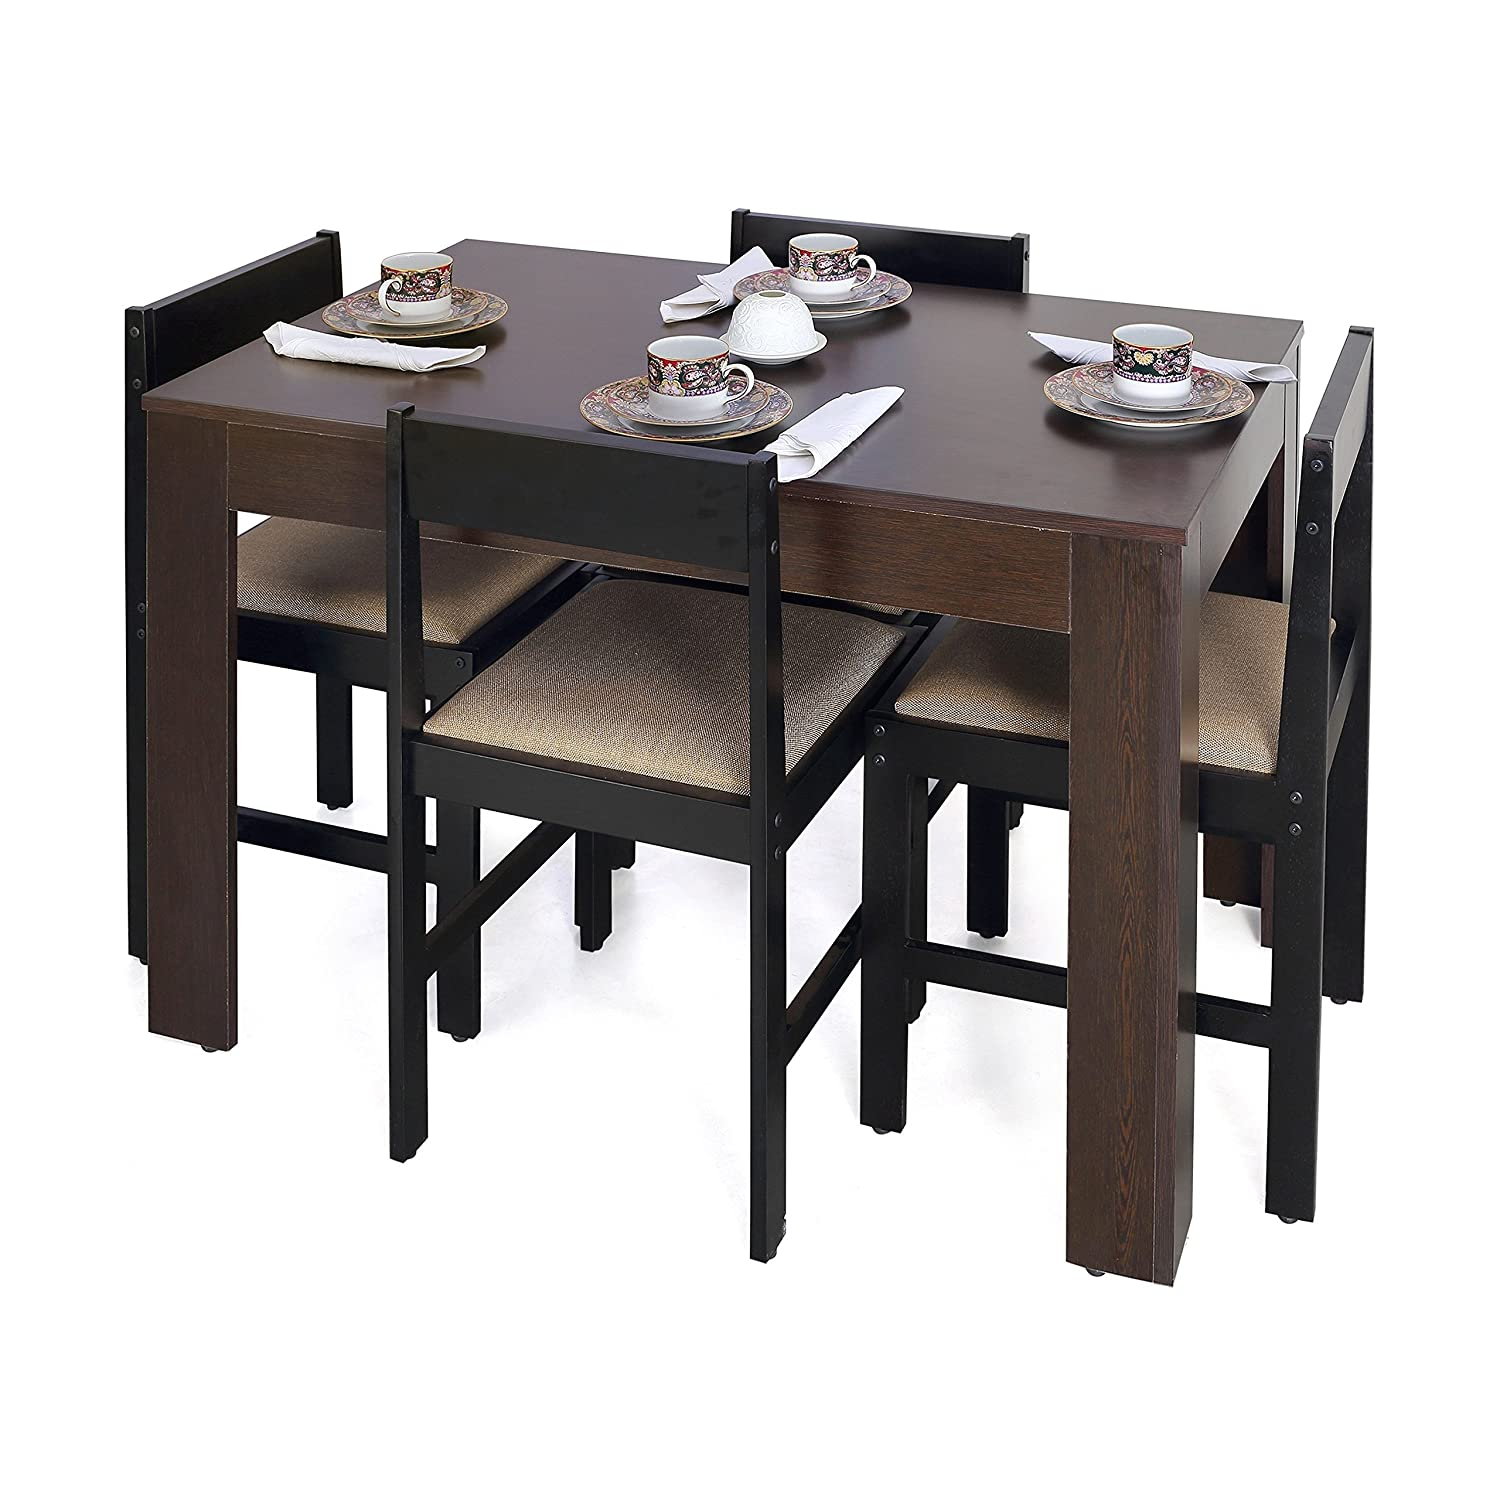 Forzza Peter Four Seater Rectangular Dining Table Set Wenge